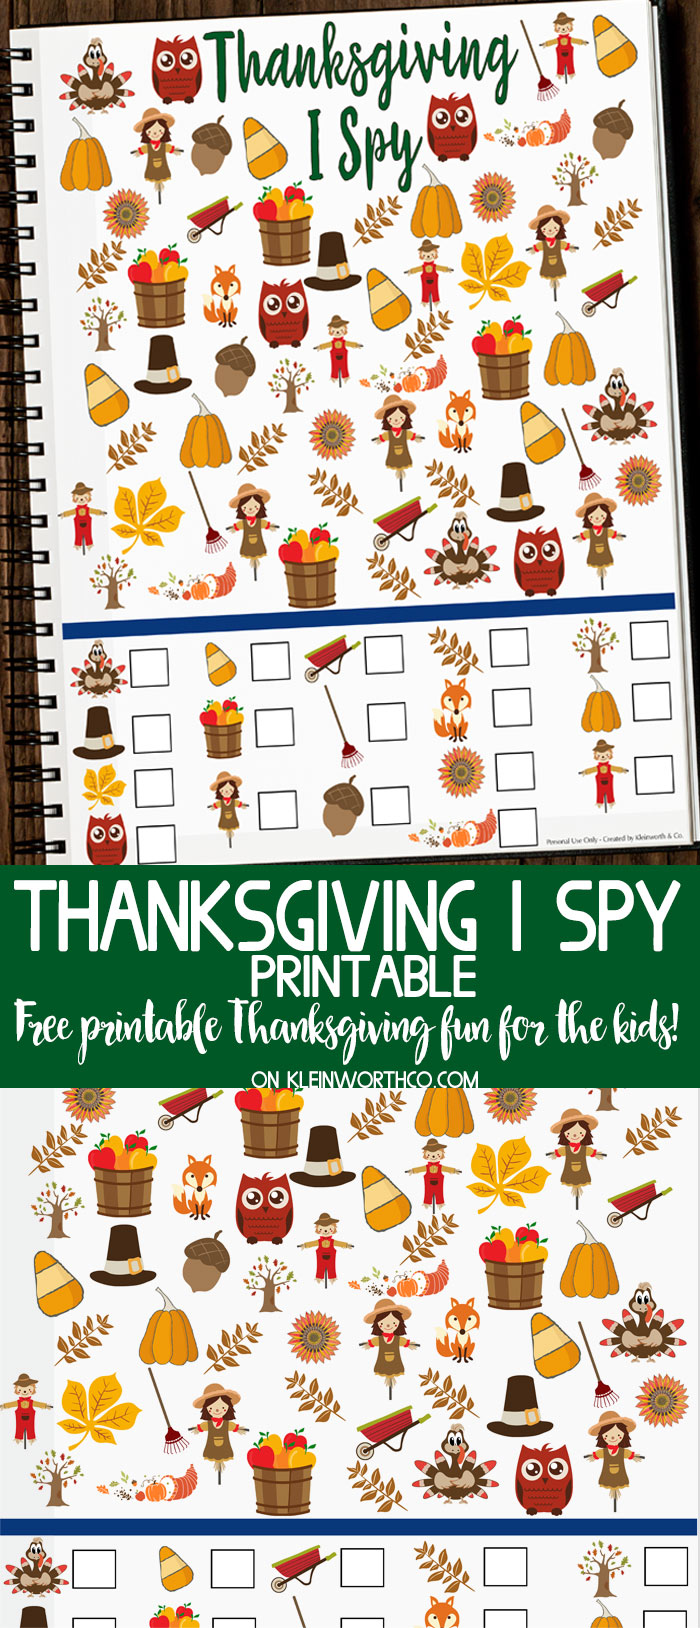 photograph regarding Free Printable Thanksgiving Games for Adults referred to as No cost Thanksgiving I Spy Printable - Kleinworth Co